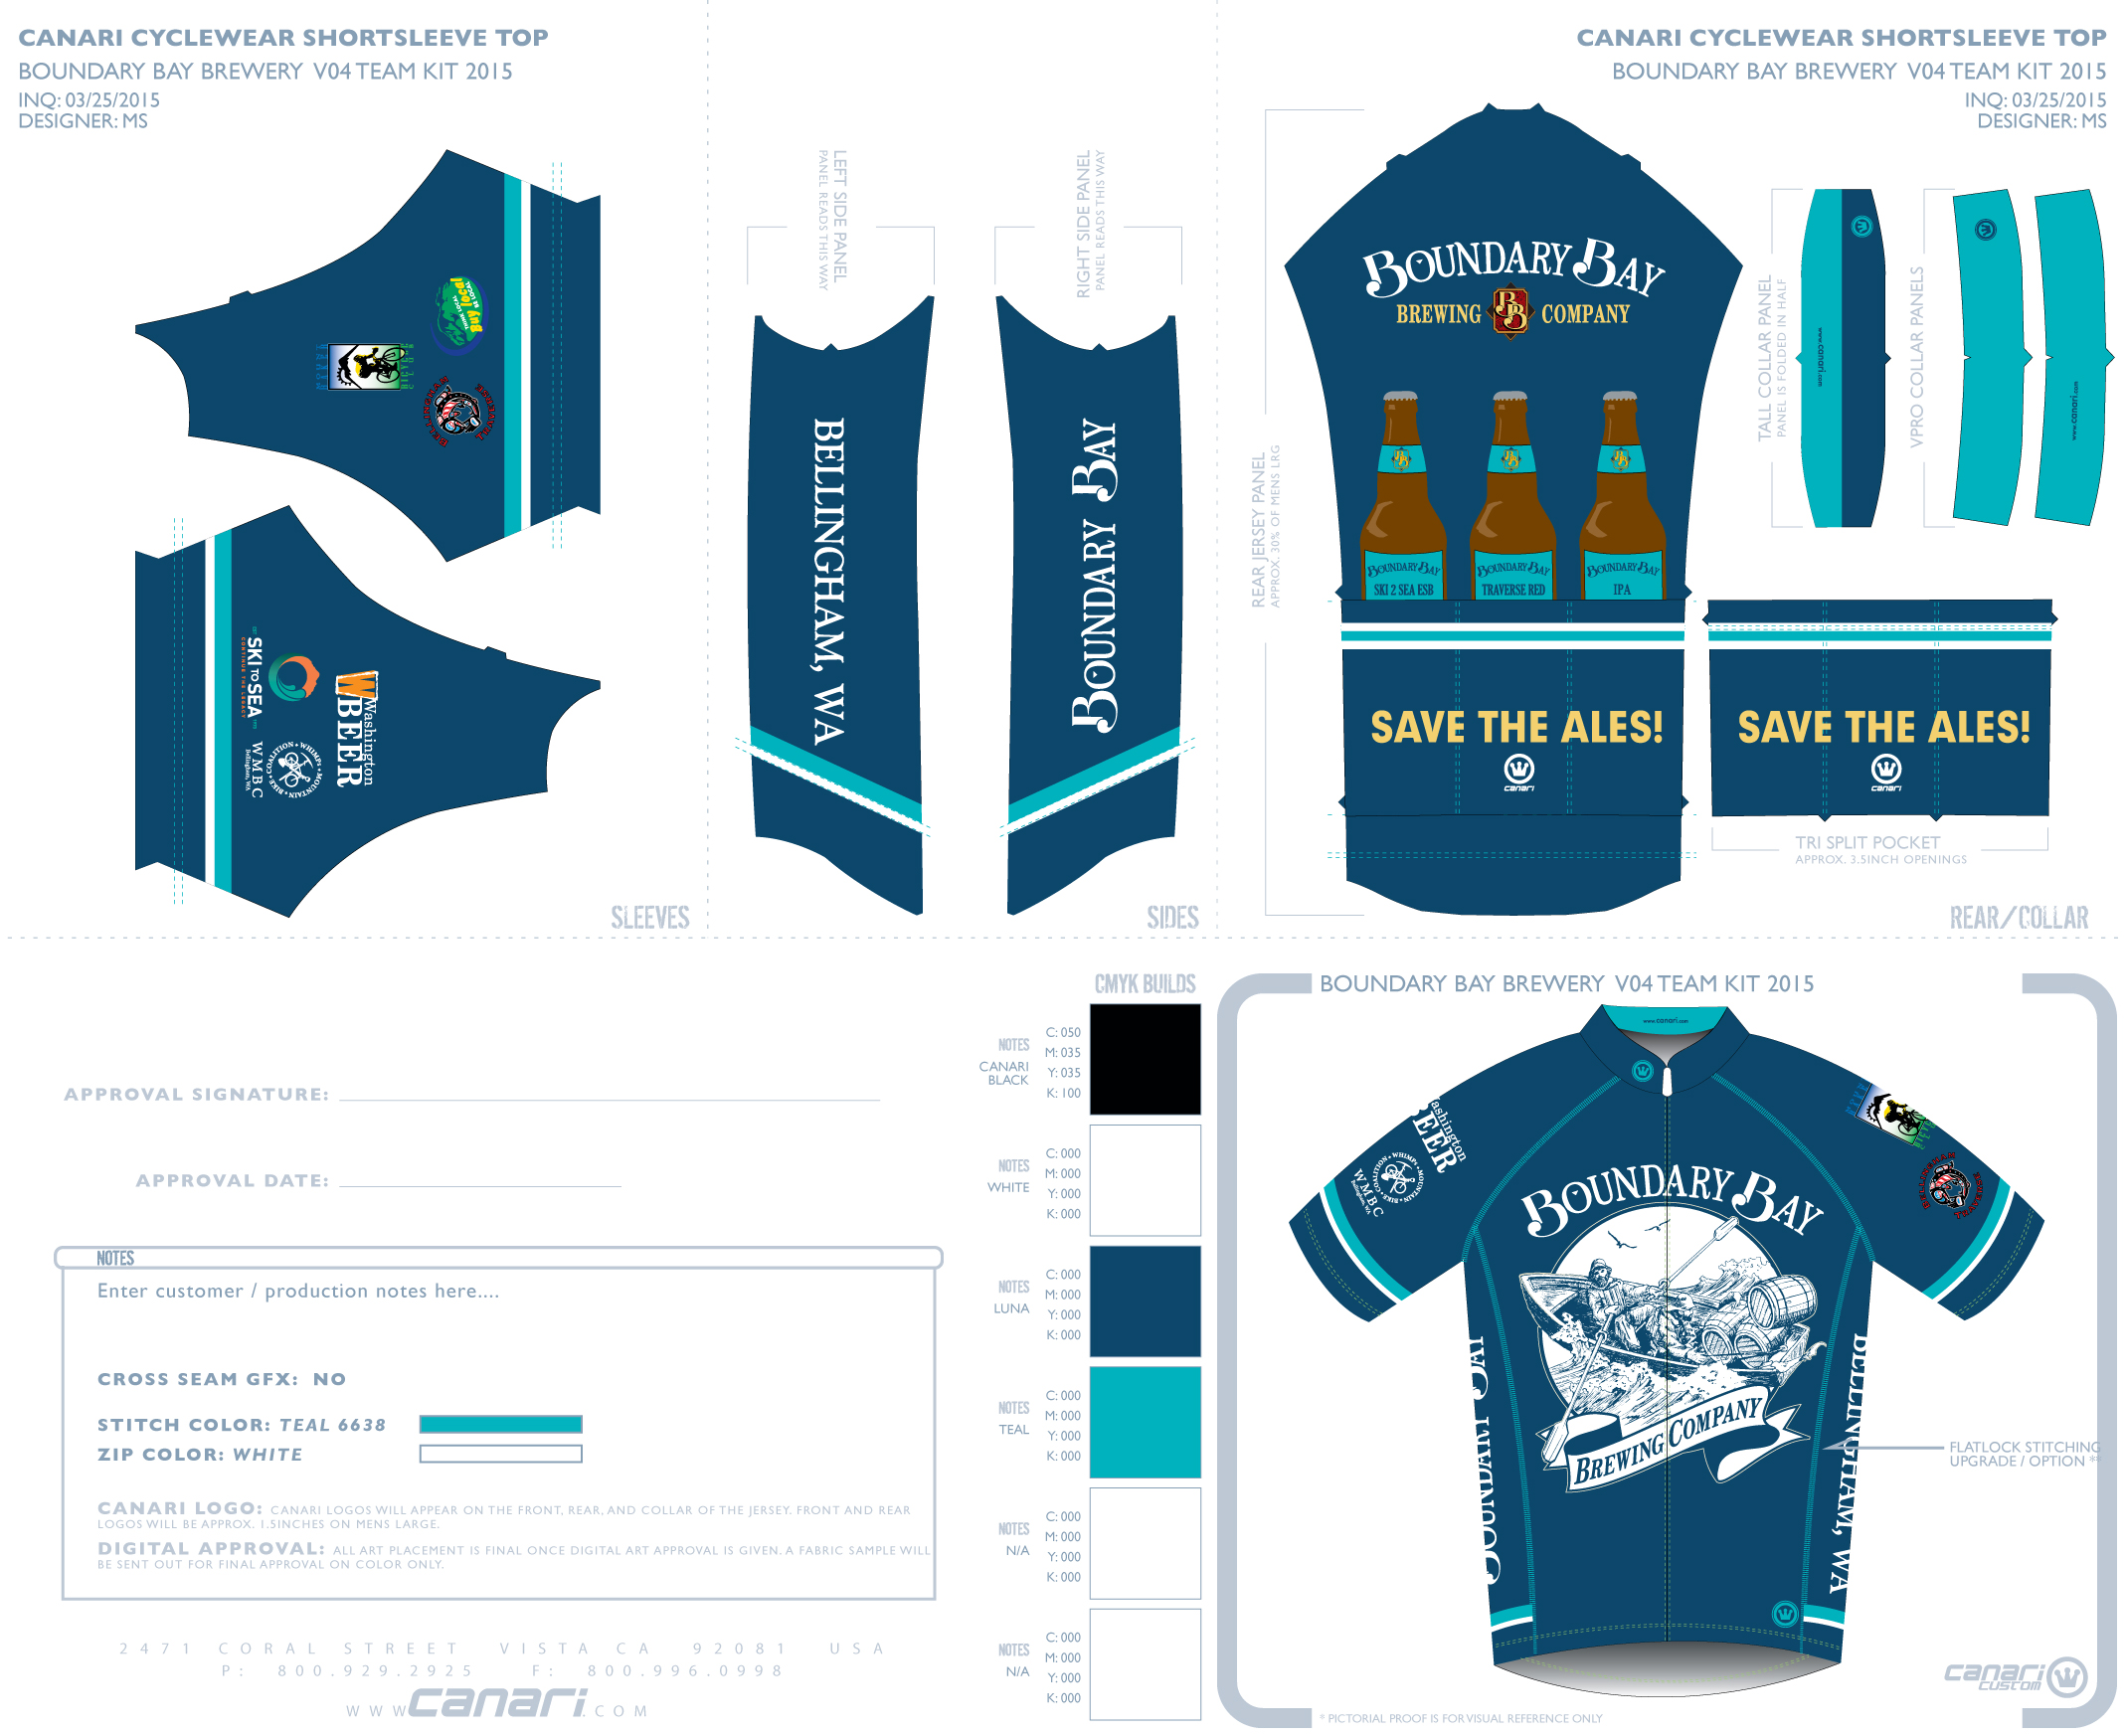 Canari Bike Jersey   Biking is kind of a big deal in Bellingham. Every spring, Boundary Bay releases a custom short-sleeve Canari Cycle jersey for their avid beer-drinking-bikers. Here's the 2015 version.